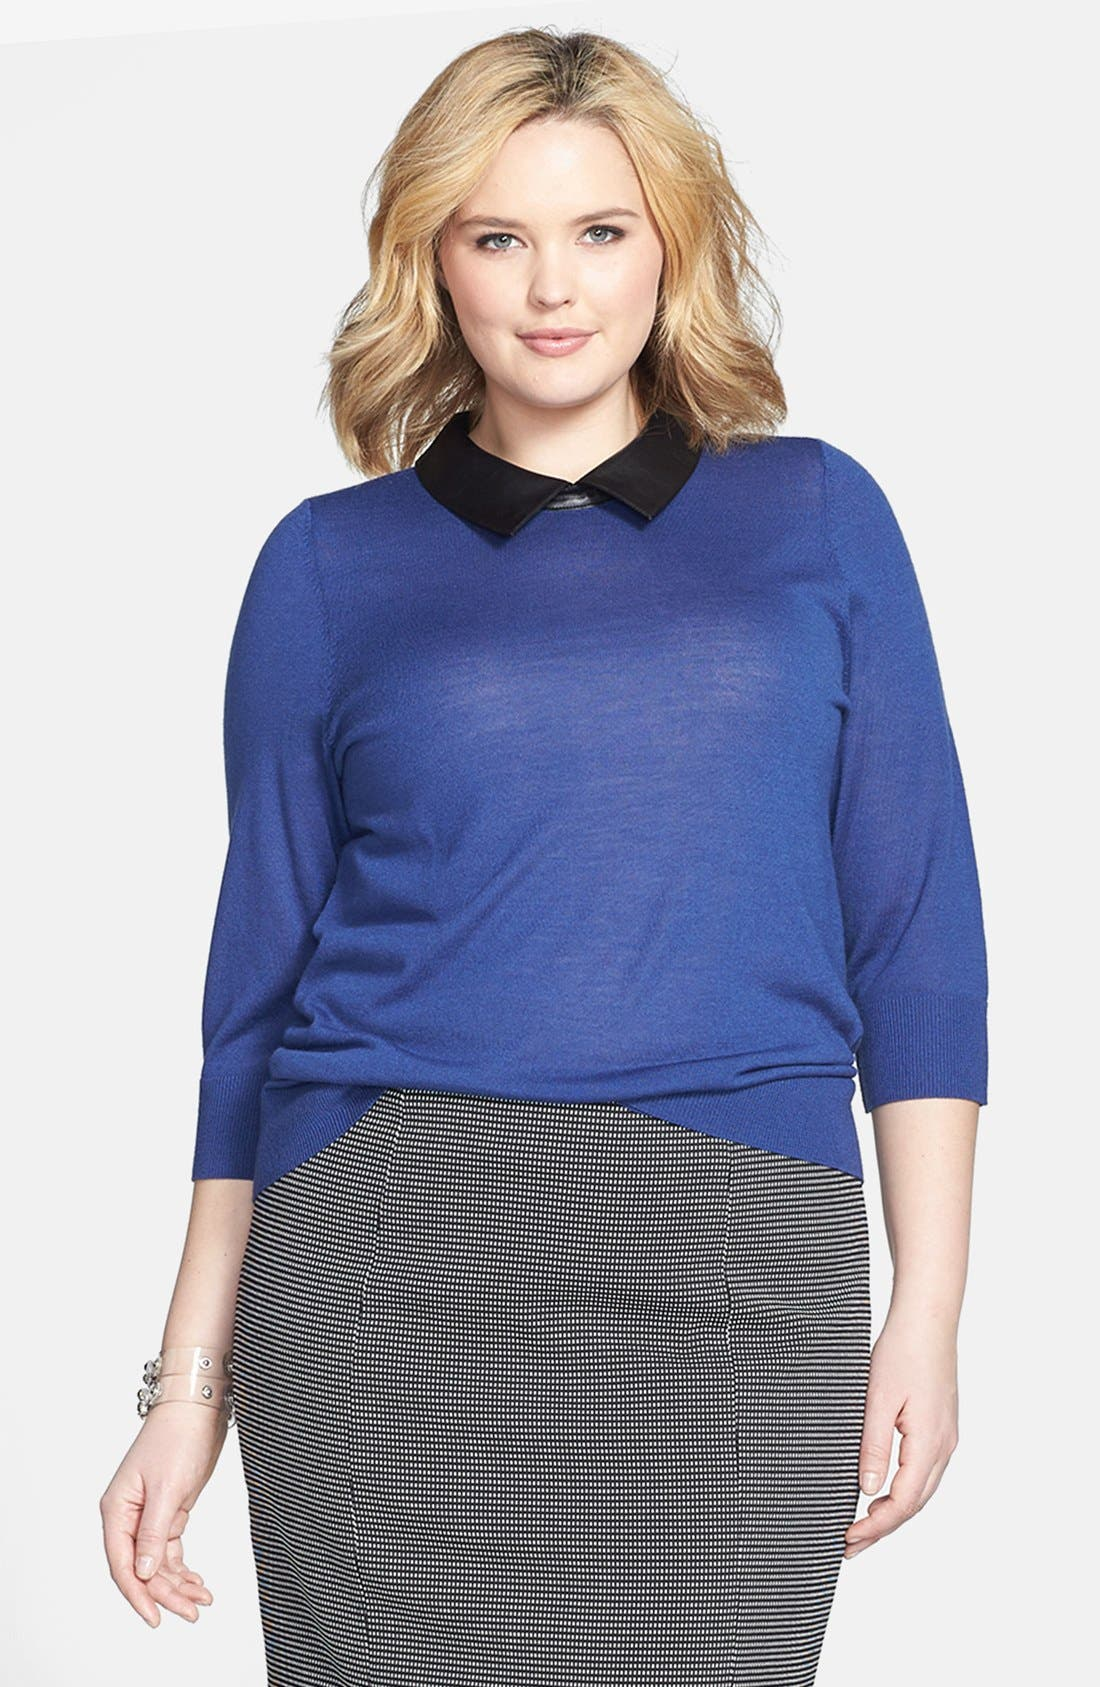 Alternate Image 1 Selected - Sejour Faux Leather Collar Sweater (Plus Size)